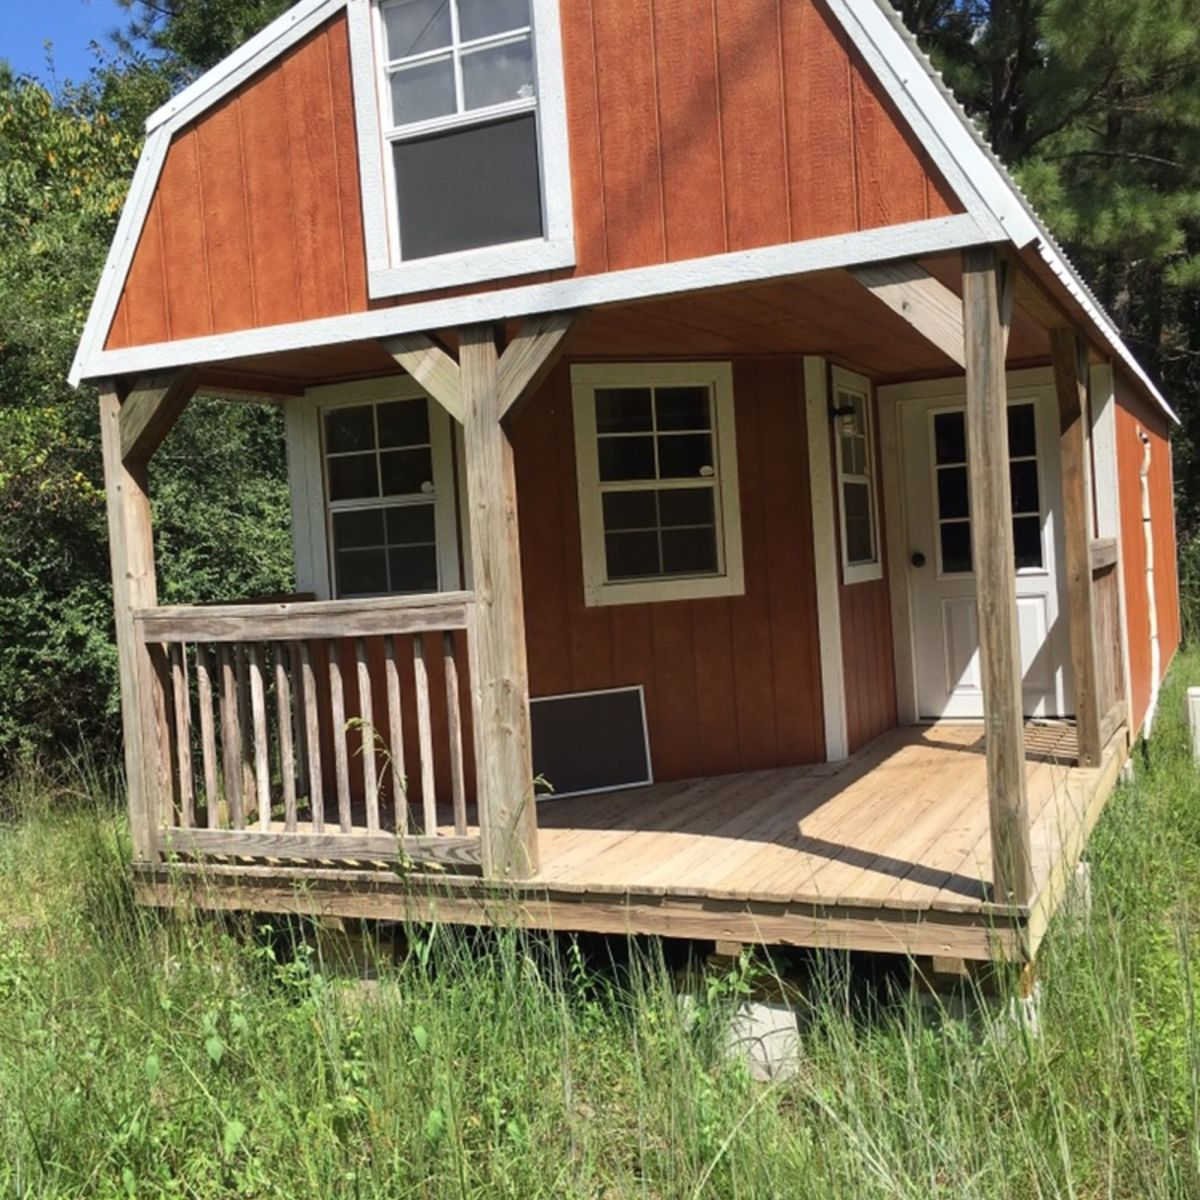 Tiny Houses For Sale In Mississippi - Tiny Houses For Sale, Rent and on jackson ms homes, natchez ms homes, brandon ms homes, new albany ms homes, clarksdale ms homes, mississippi homes, canton ms homes, gulfport ms homes, charleston ms homes, tunica ms homes, nashville tn homes, greenville ms homes, huntsville al homes, pontotoc ms homes, eupora ms homes, oxford ms homes, southaven ms homes, olive branch ms homes, pass christian ms homes, santa barbara ca homes,